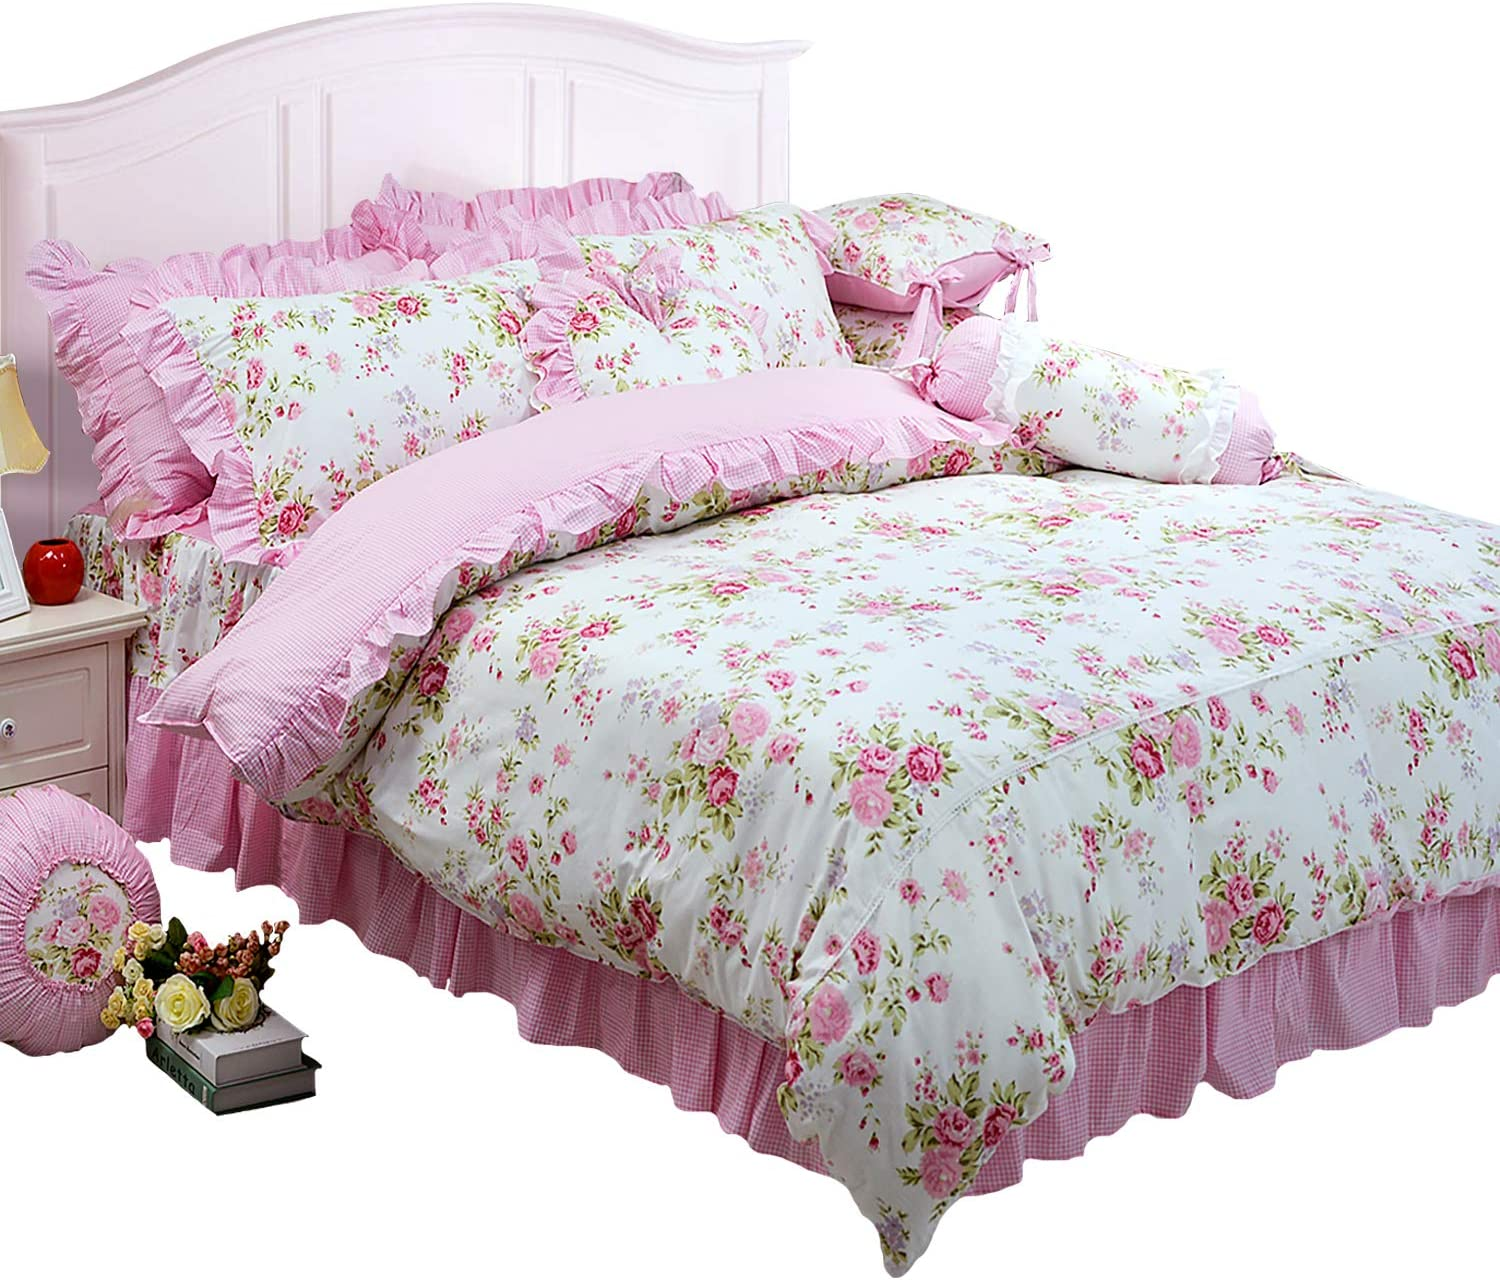 FADFAY Shabby Pink Duvet Cover Set Rose Floral Bedding Collection Elegant Princess Lace Ruffle Quilt Cover Set for Girls 4 Pieces Full Size